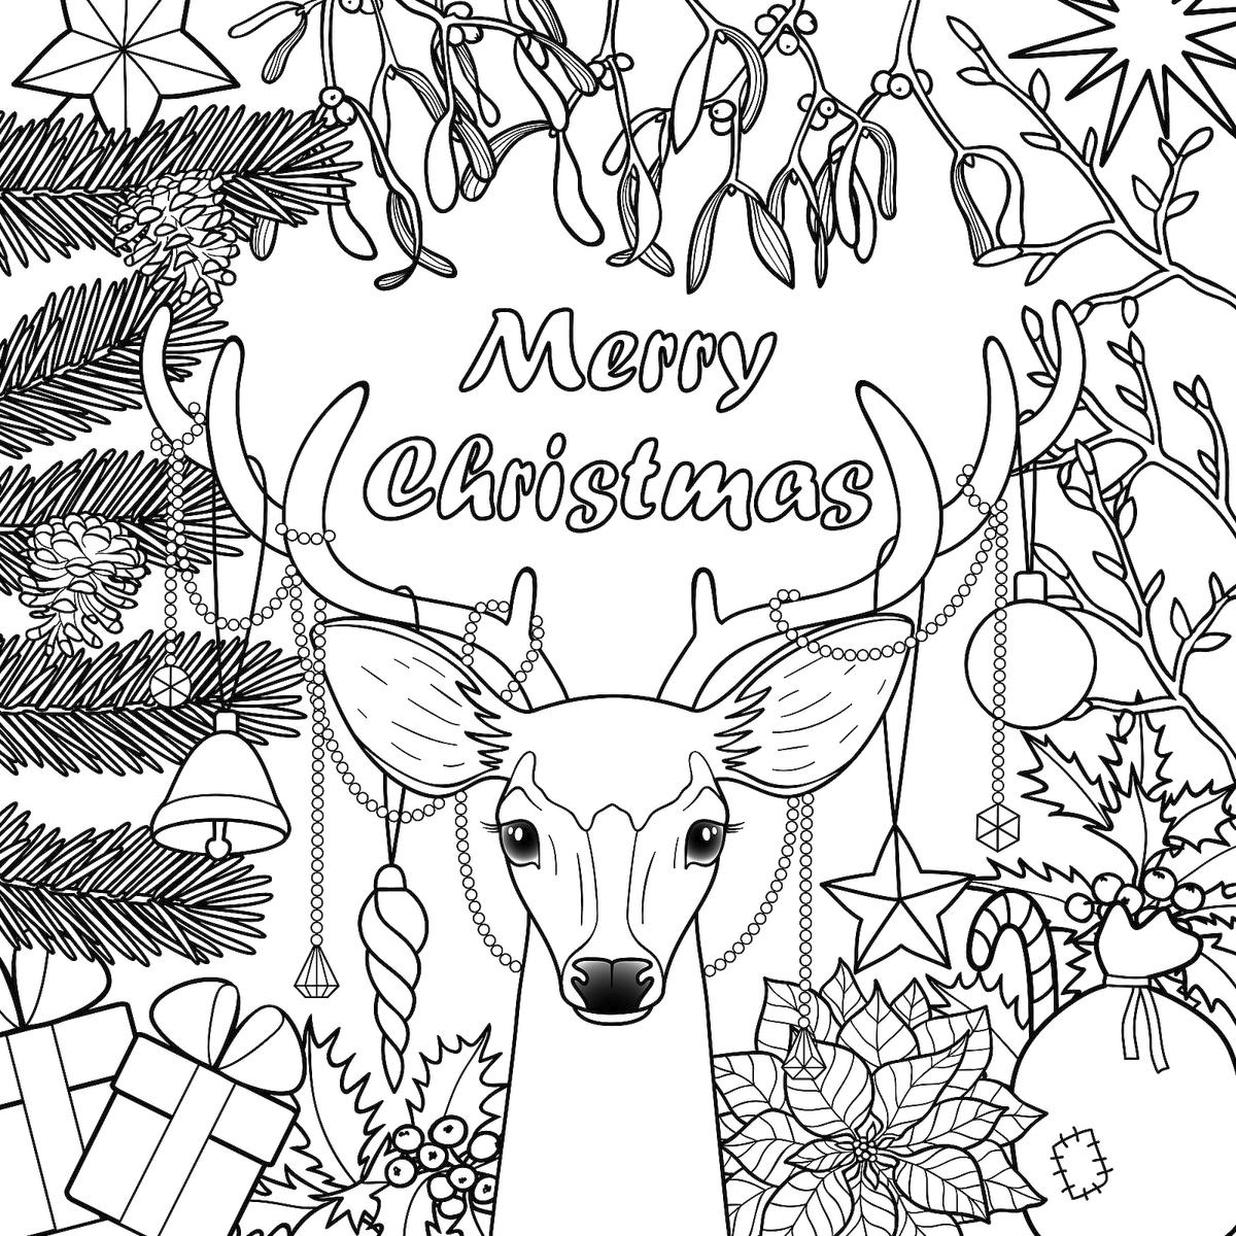 Get This Adult Christmas Coloring Pages Free to Print ...